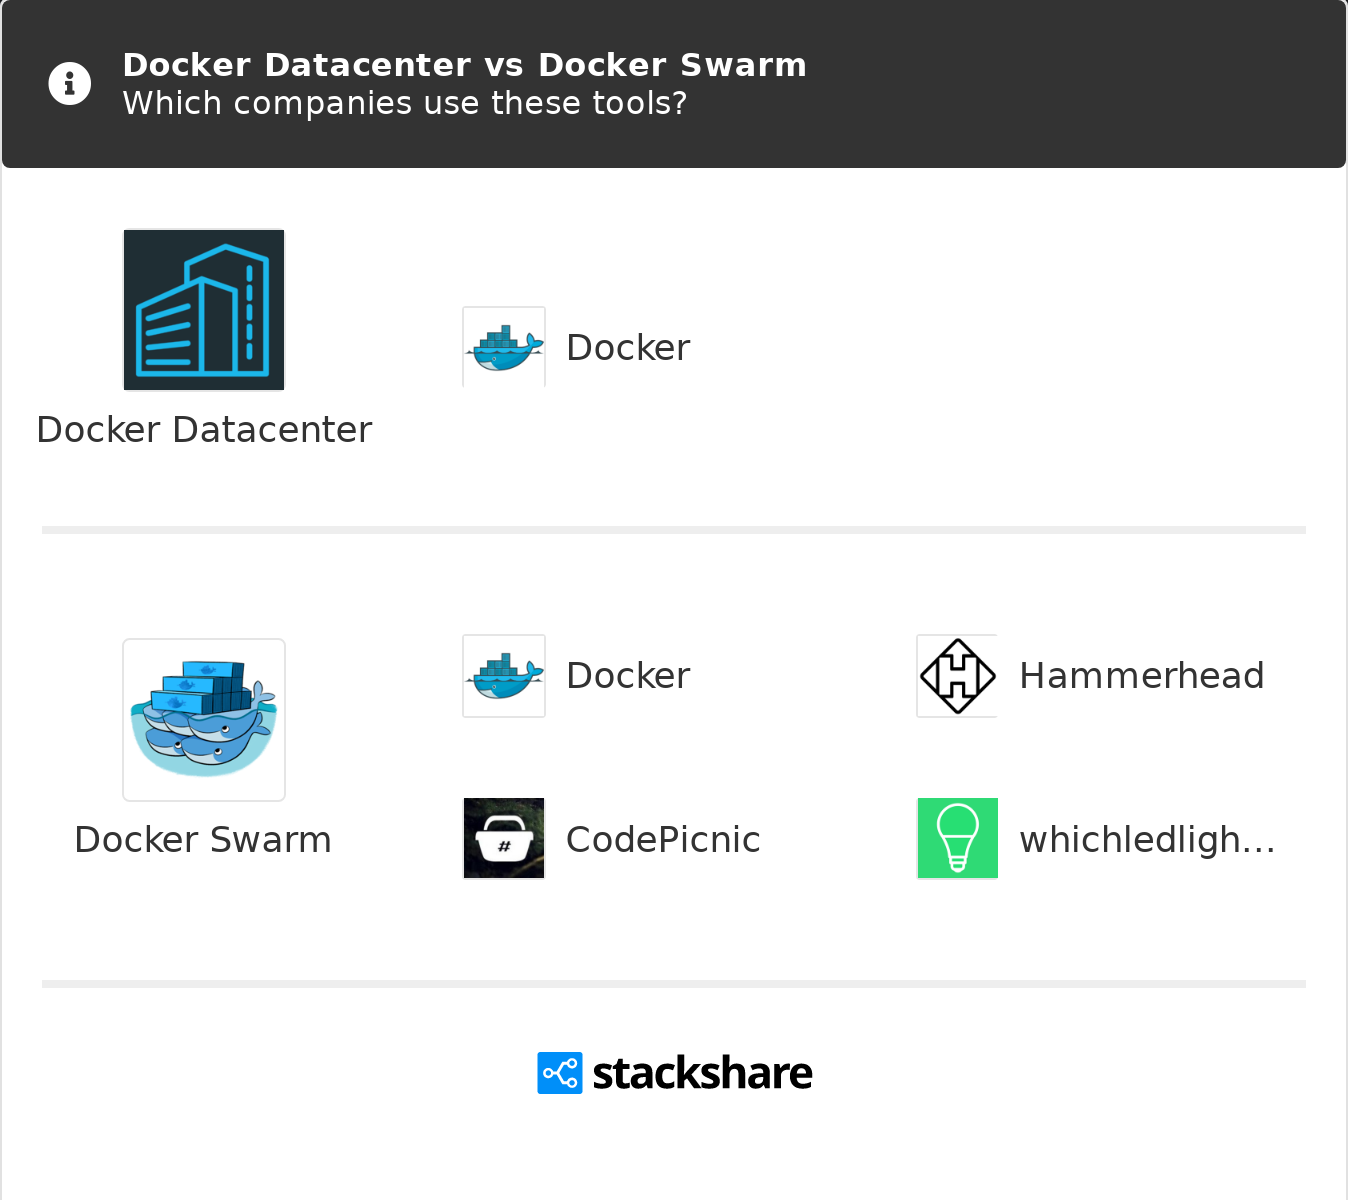 Docker Datacenter vs Docker Swarm | What are the differences?